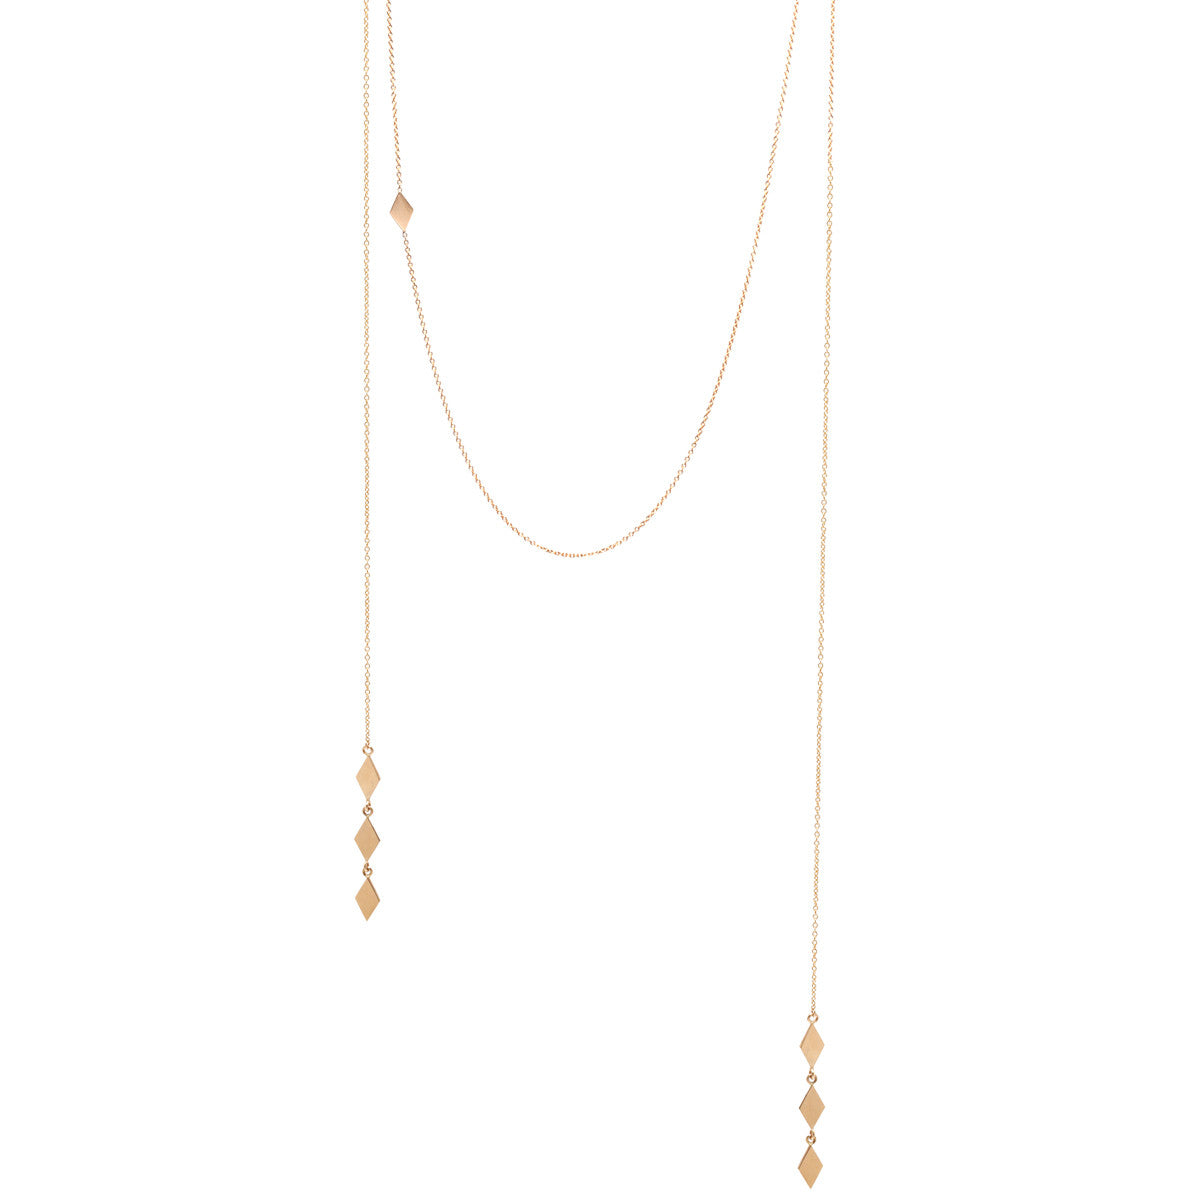 Zoë Chicco 14kt Yellow Gold Faux Wrap Around Necklace